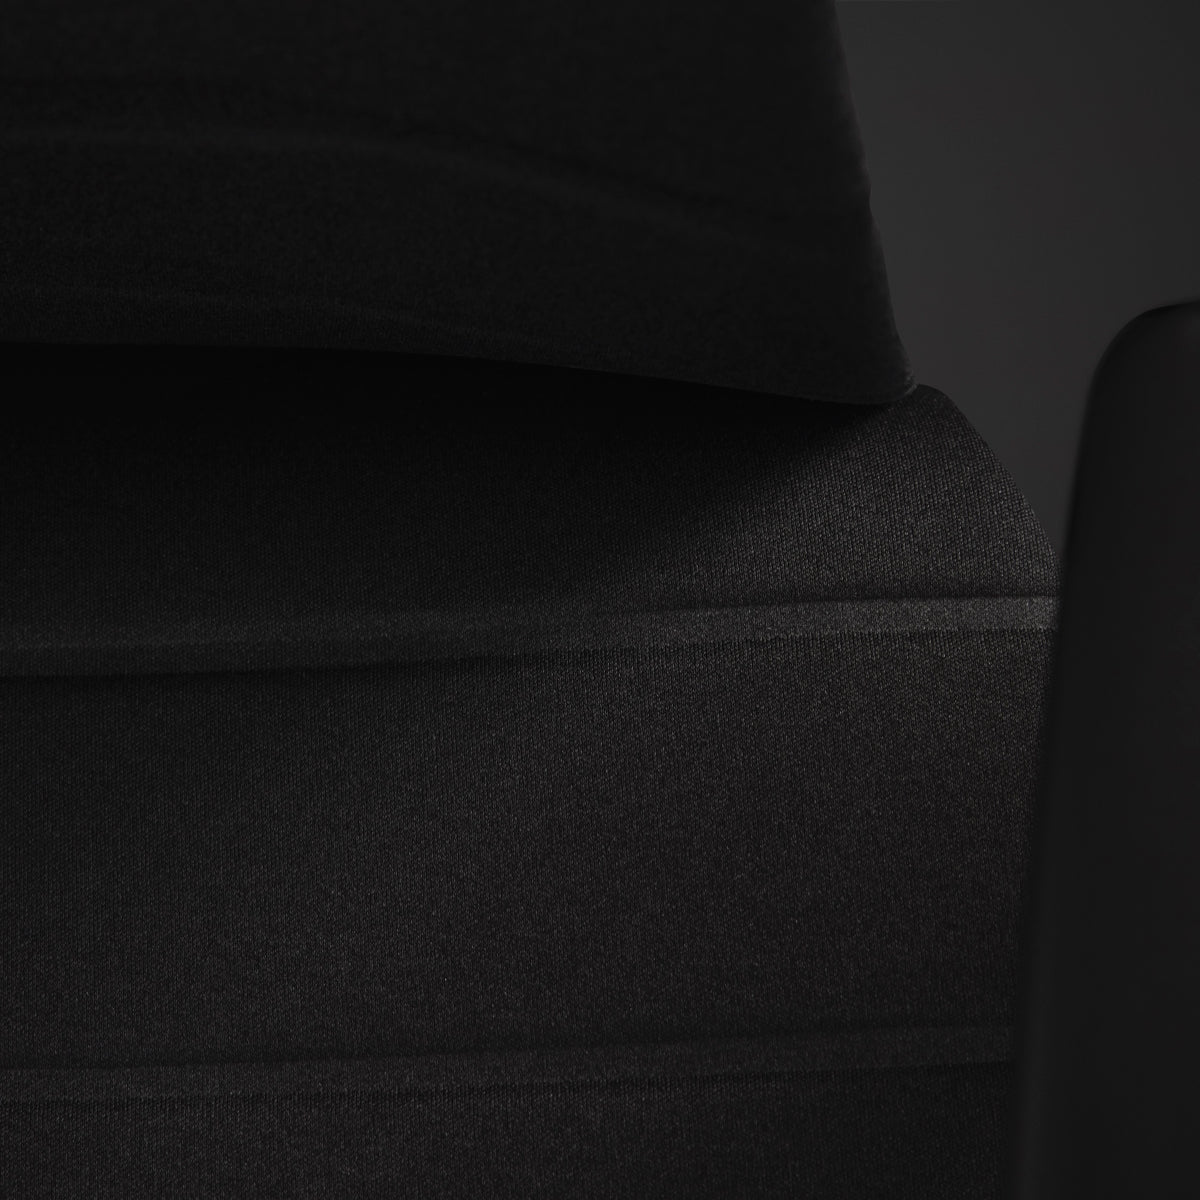 An Embody Gaming Chair close-up on the seat's layered technology with a black background.